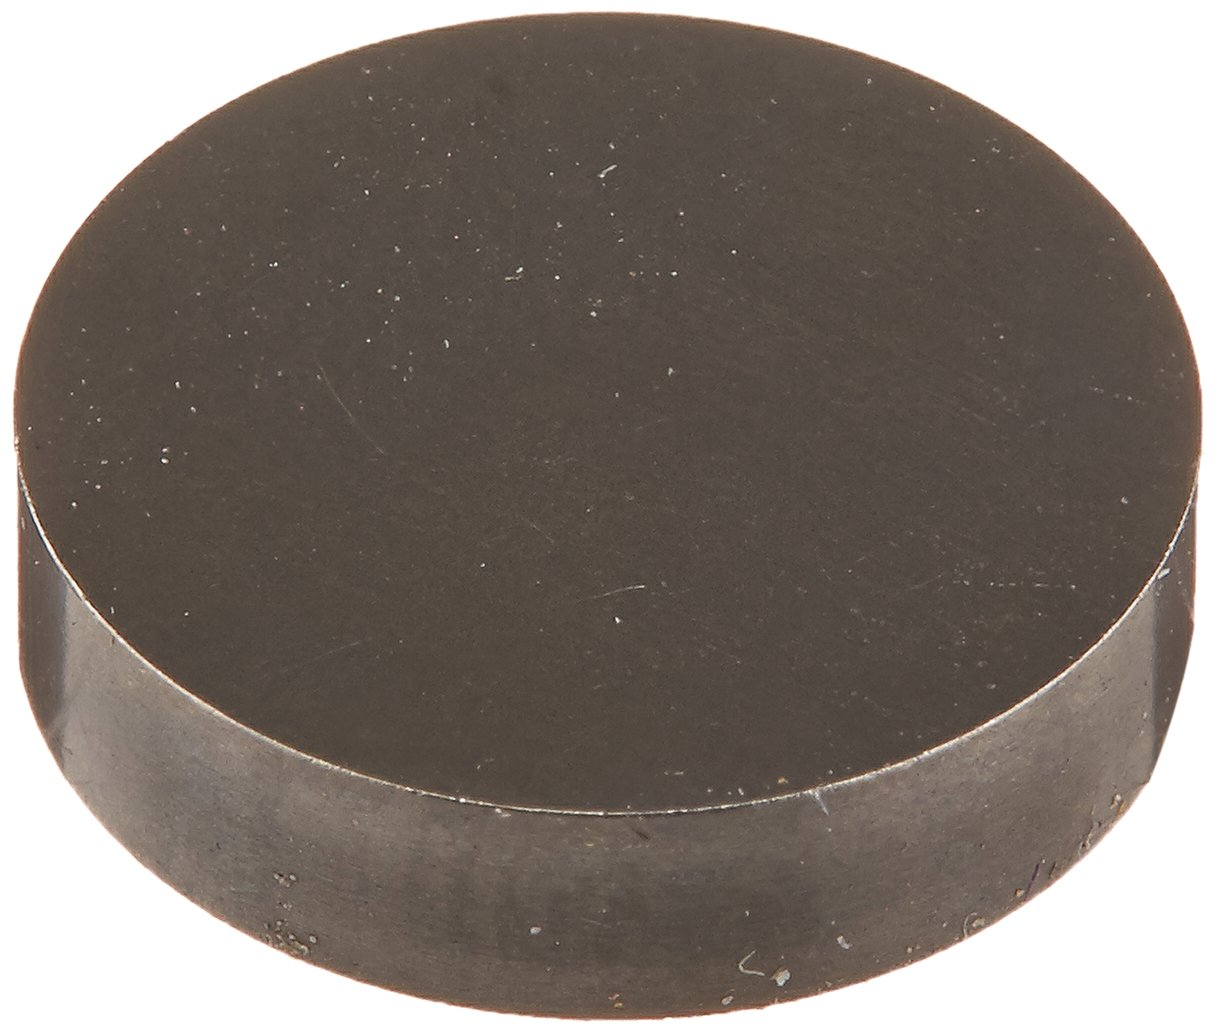 Pack of 5 Prox Racing Parts 29.948225 9.48mm x 2.25mm Valve Shim,